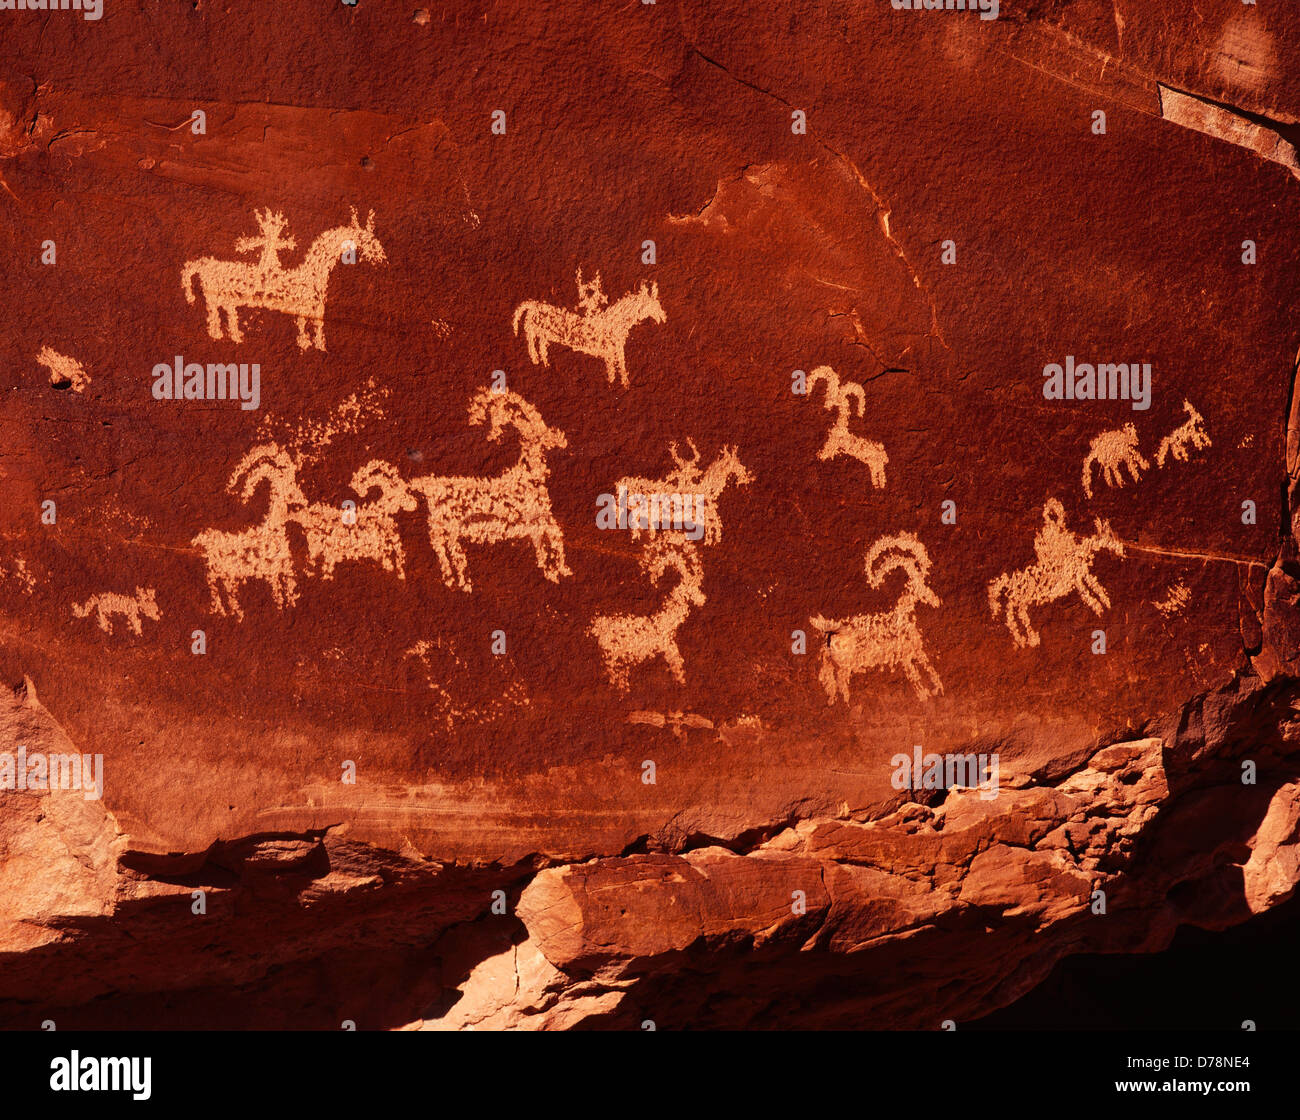 Wolfe Ranch Petroglyph Panel likely Ute in origin Arches National Park Utah. - Stock Image